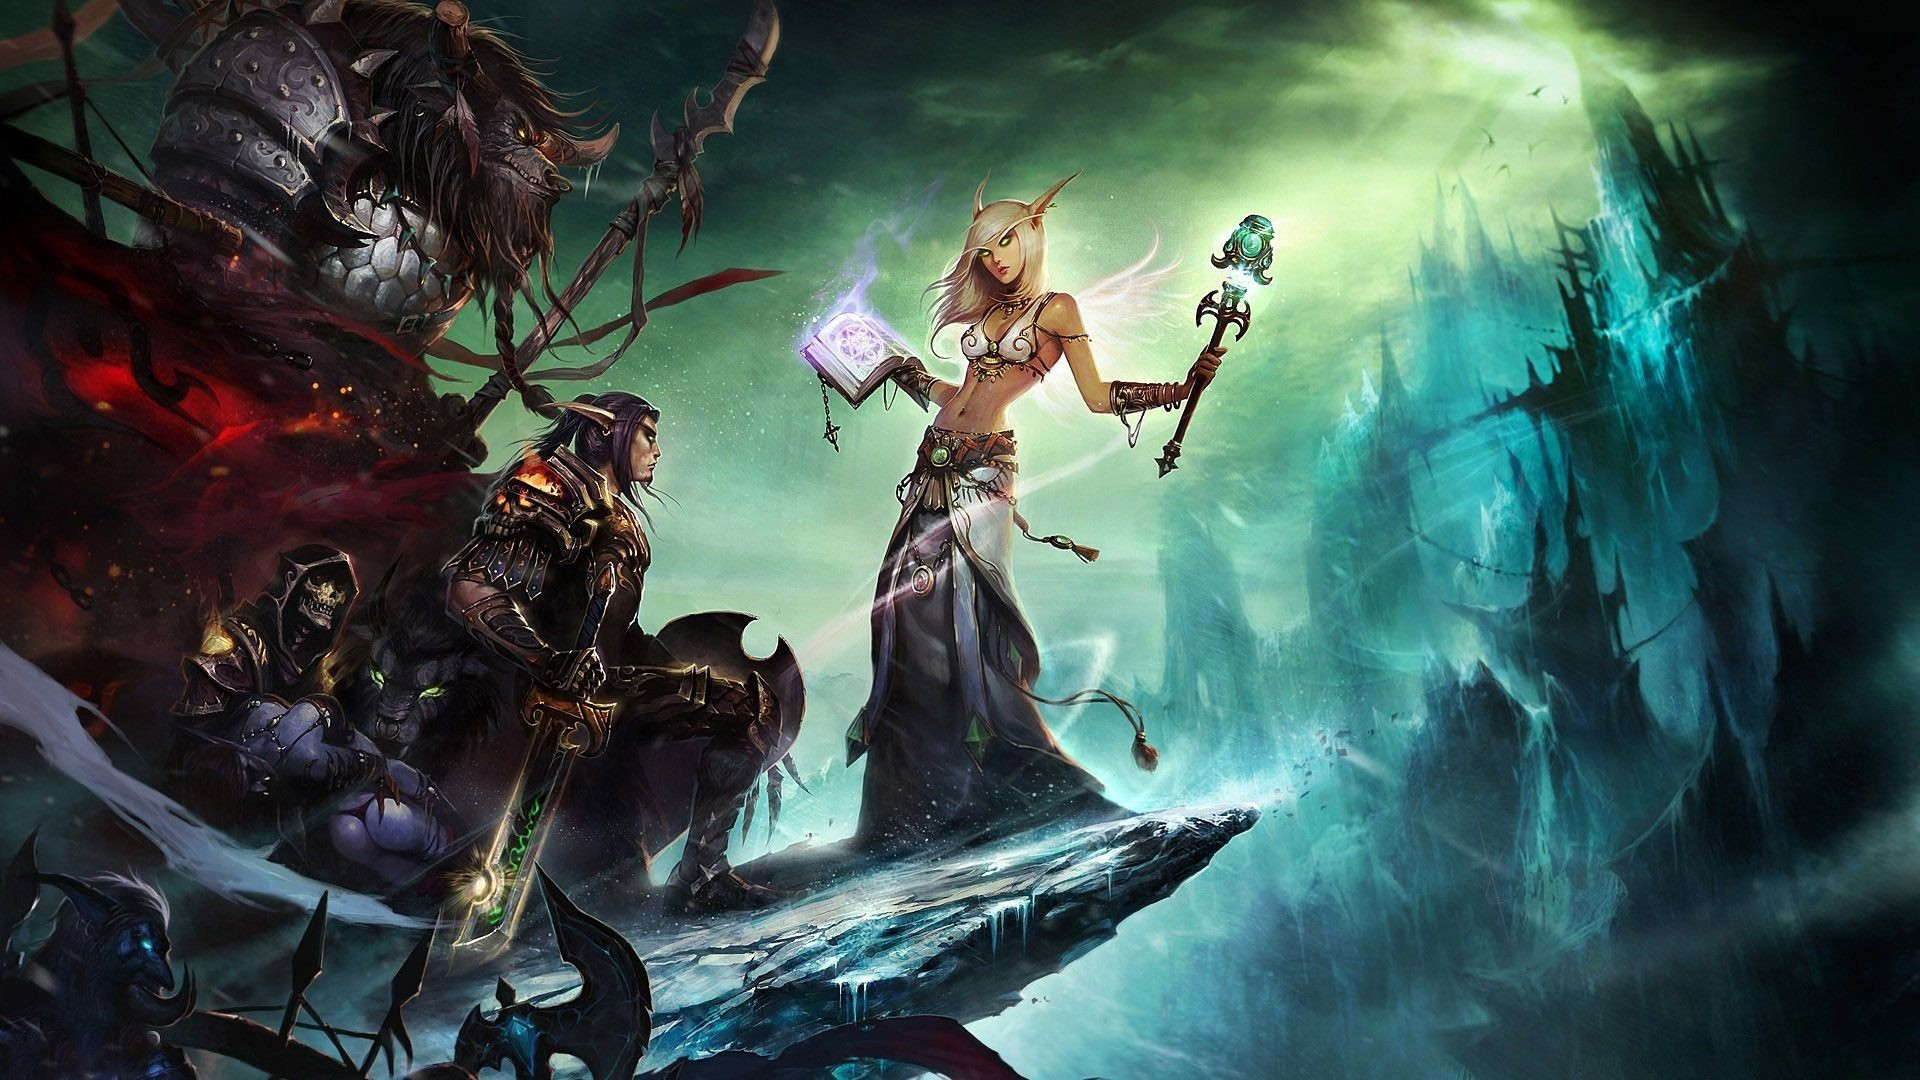 Res: 1920x1080, World Of Warcraft Wallpapers Full Hd Sdeerwallpaper